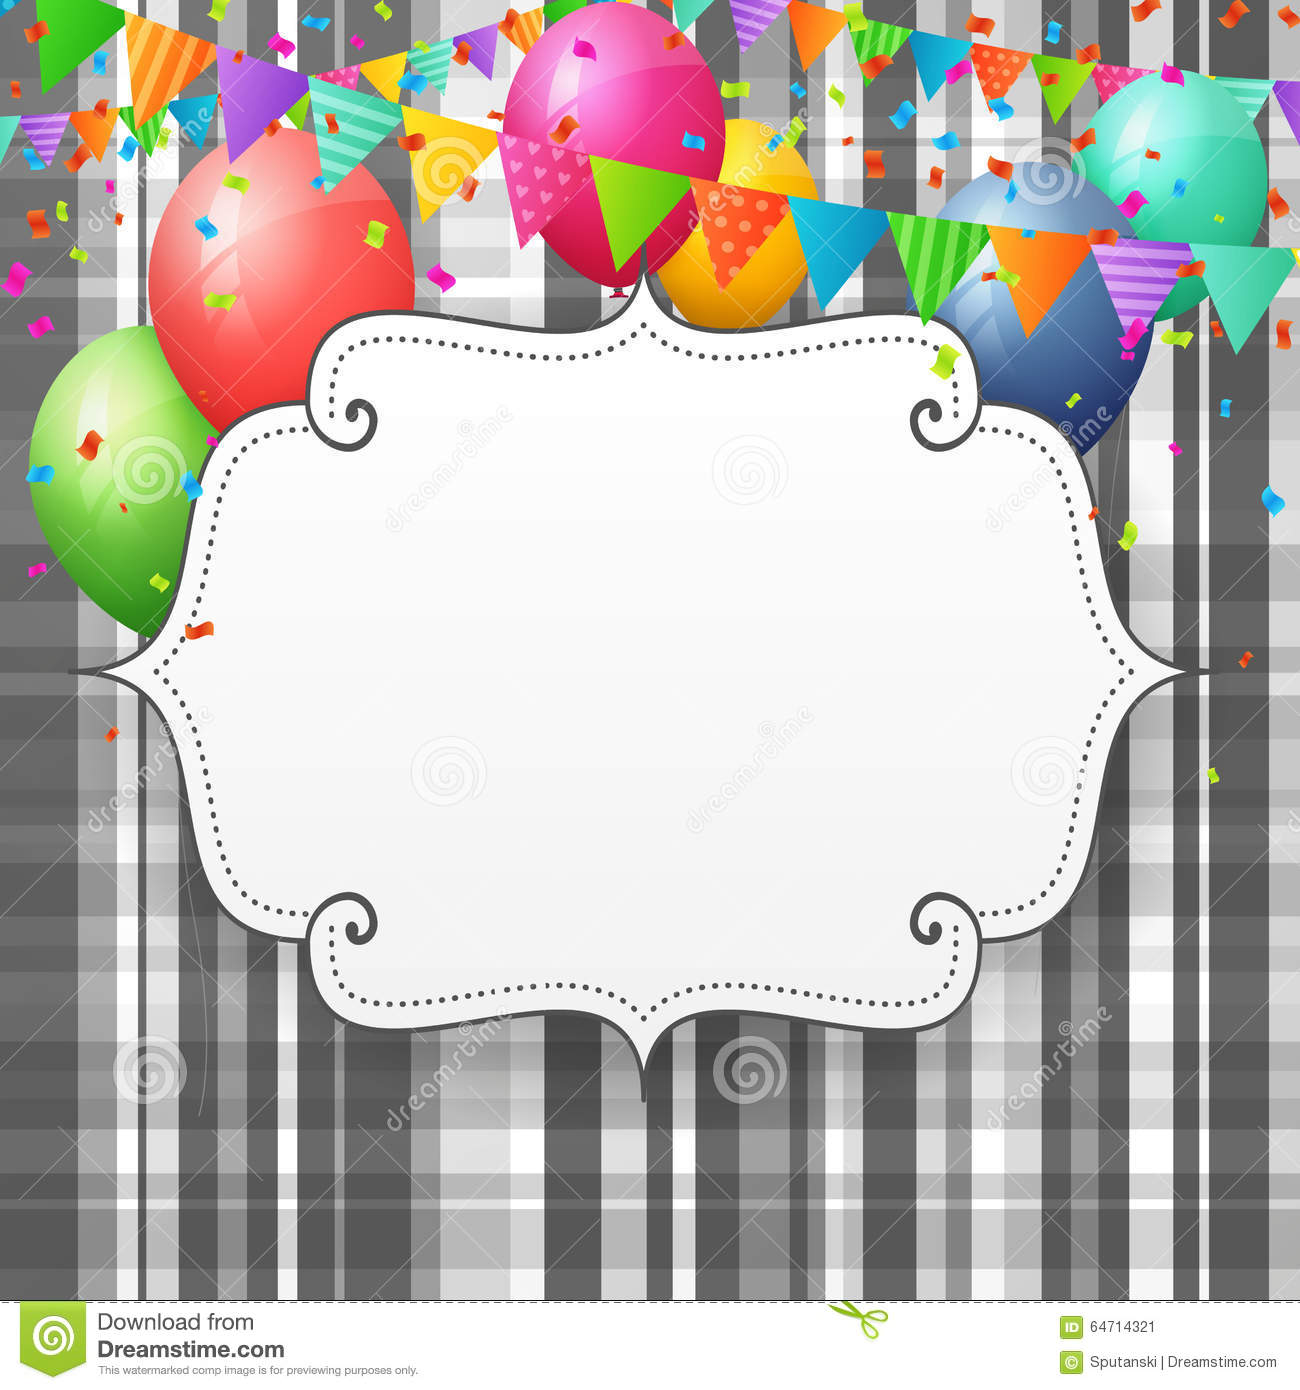 Empty Birthday greeting card with balloons and flags